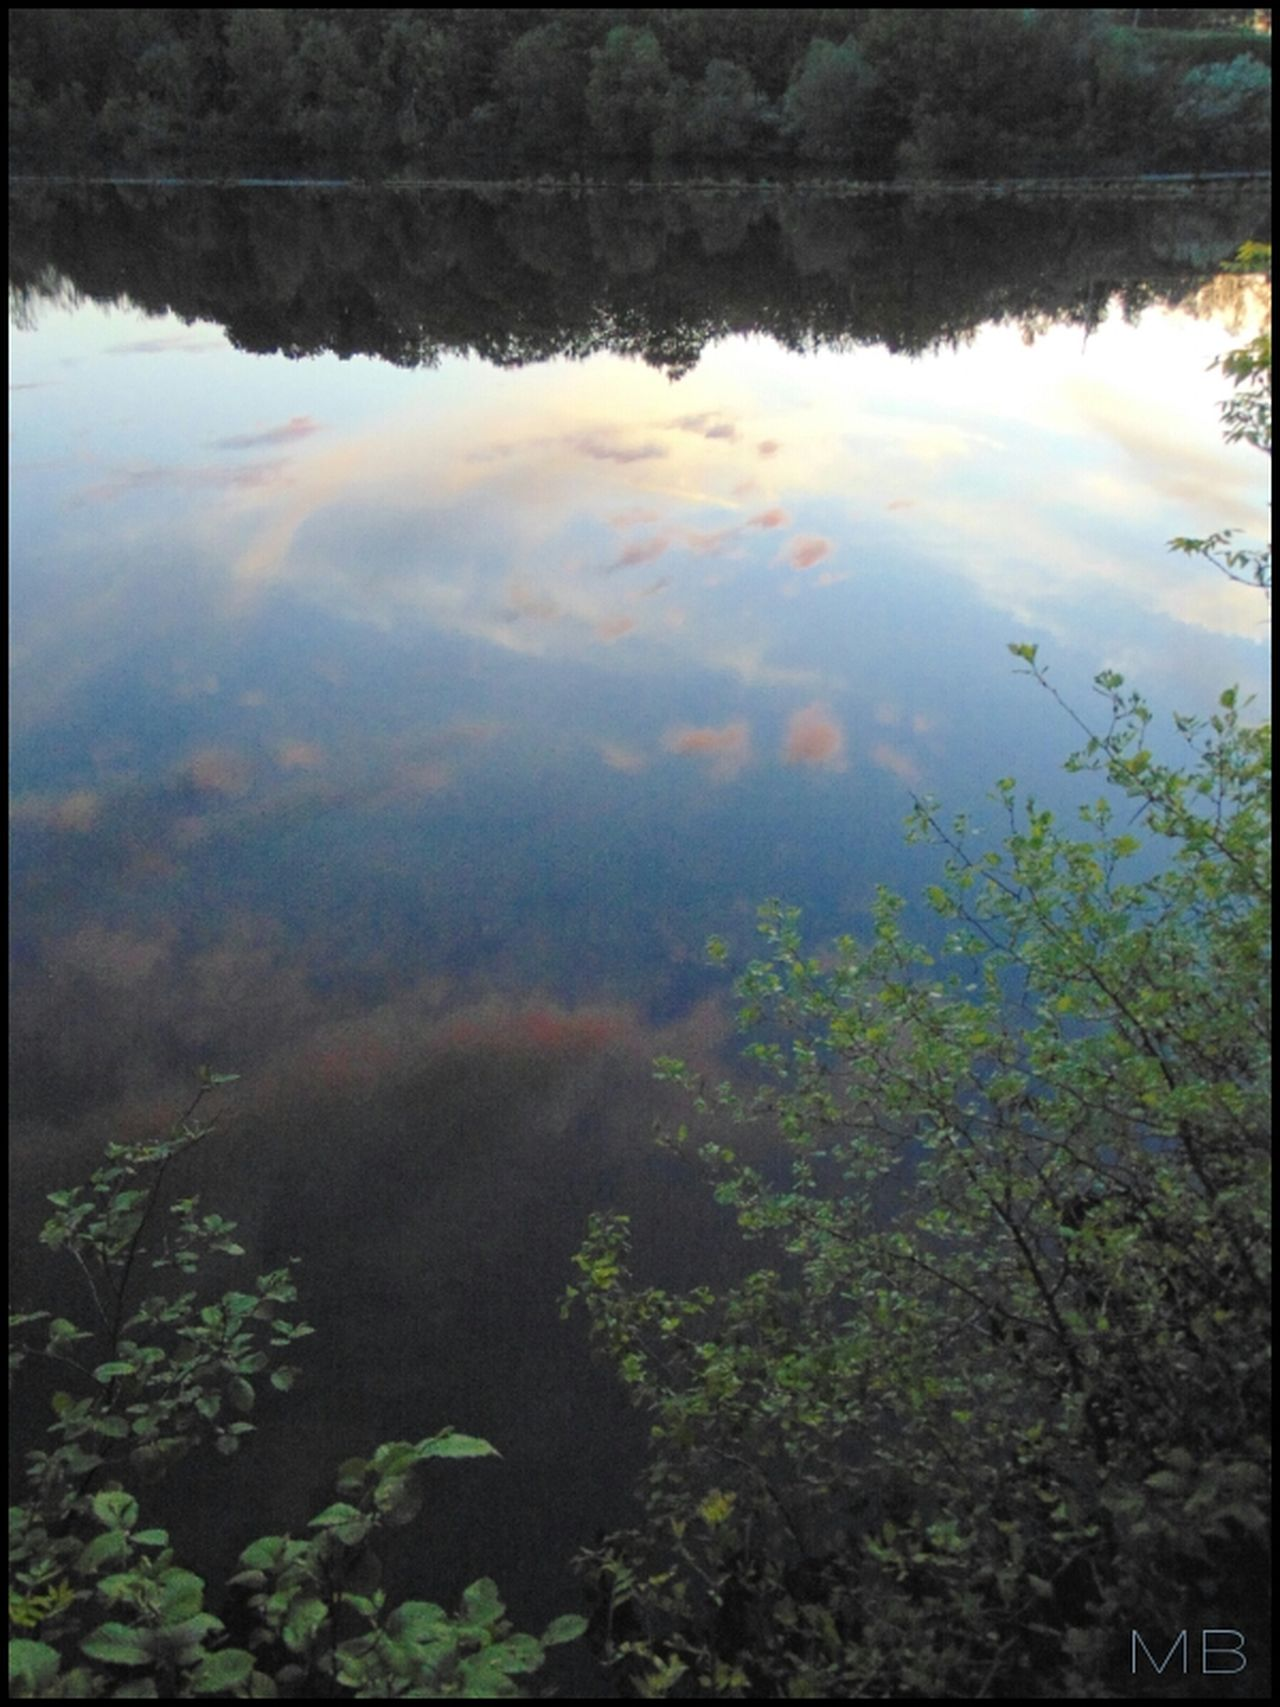 MBfoto, Water Nature Reflection Tree Outdoors Standing Water Plant Day No People Landscape Beauty In Nature Sky